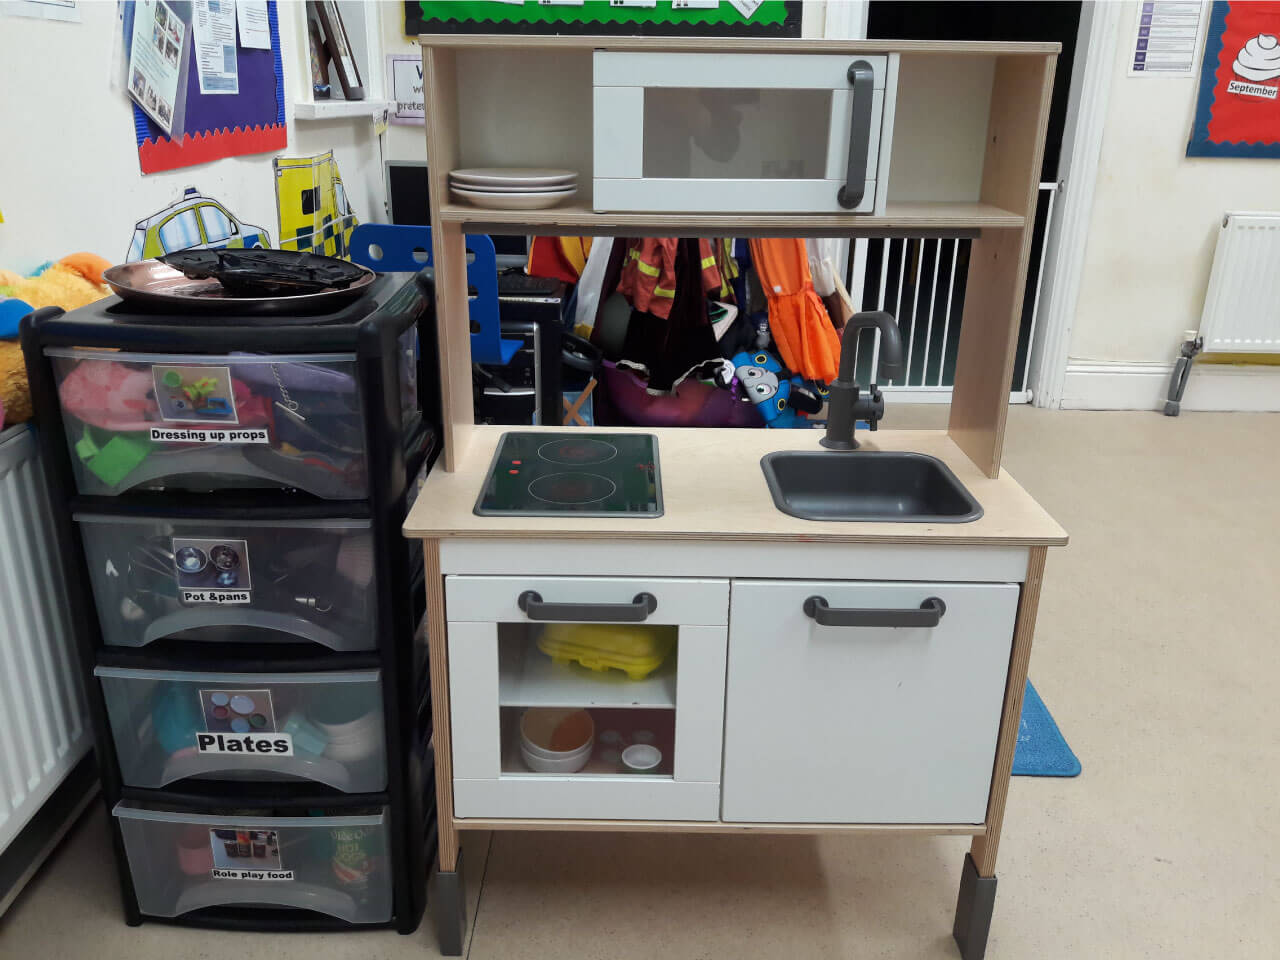 Preschool playing area that mimics a kitchen at home